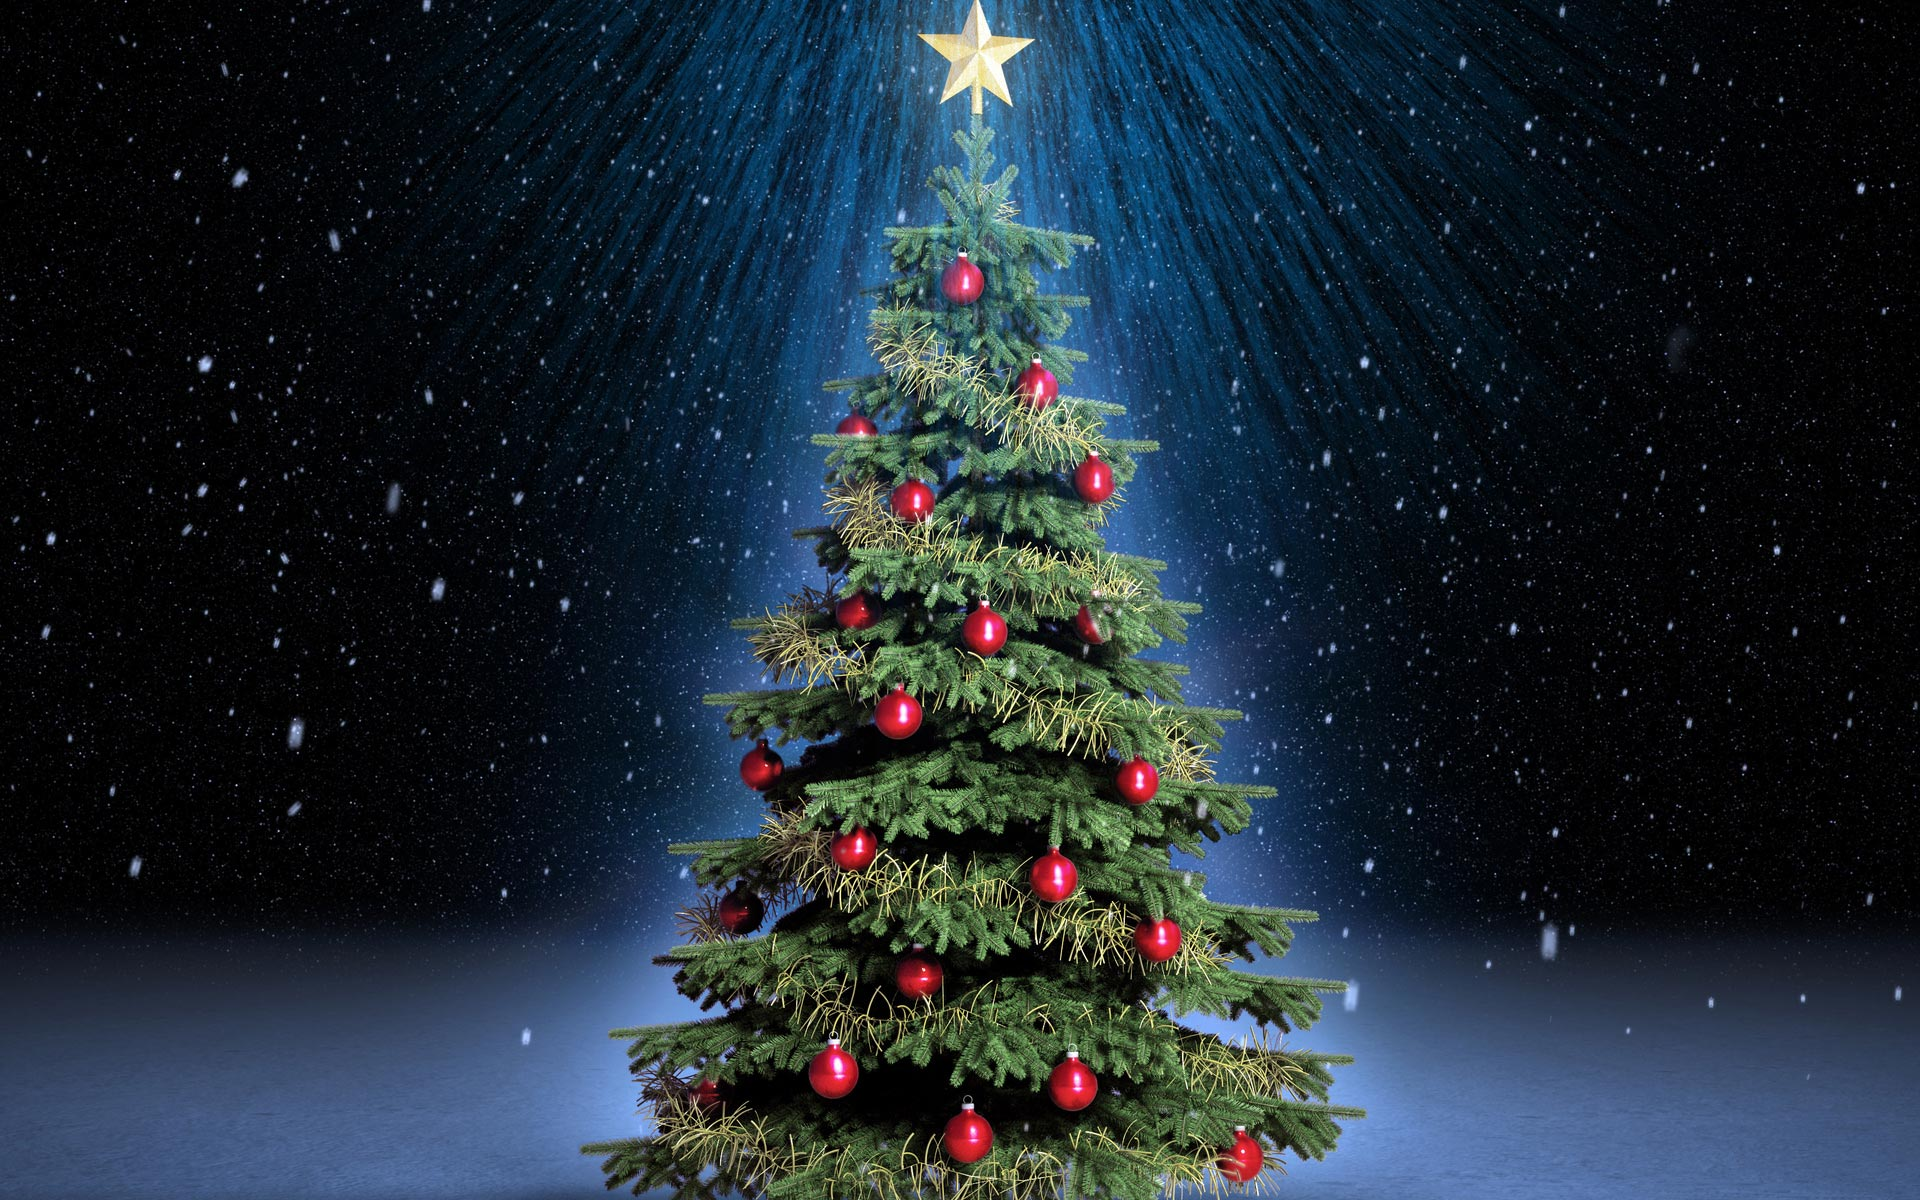 Free Christmas Tree Wallpaper 22867 1920x1200 px ~ HDWallSource.com